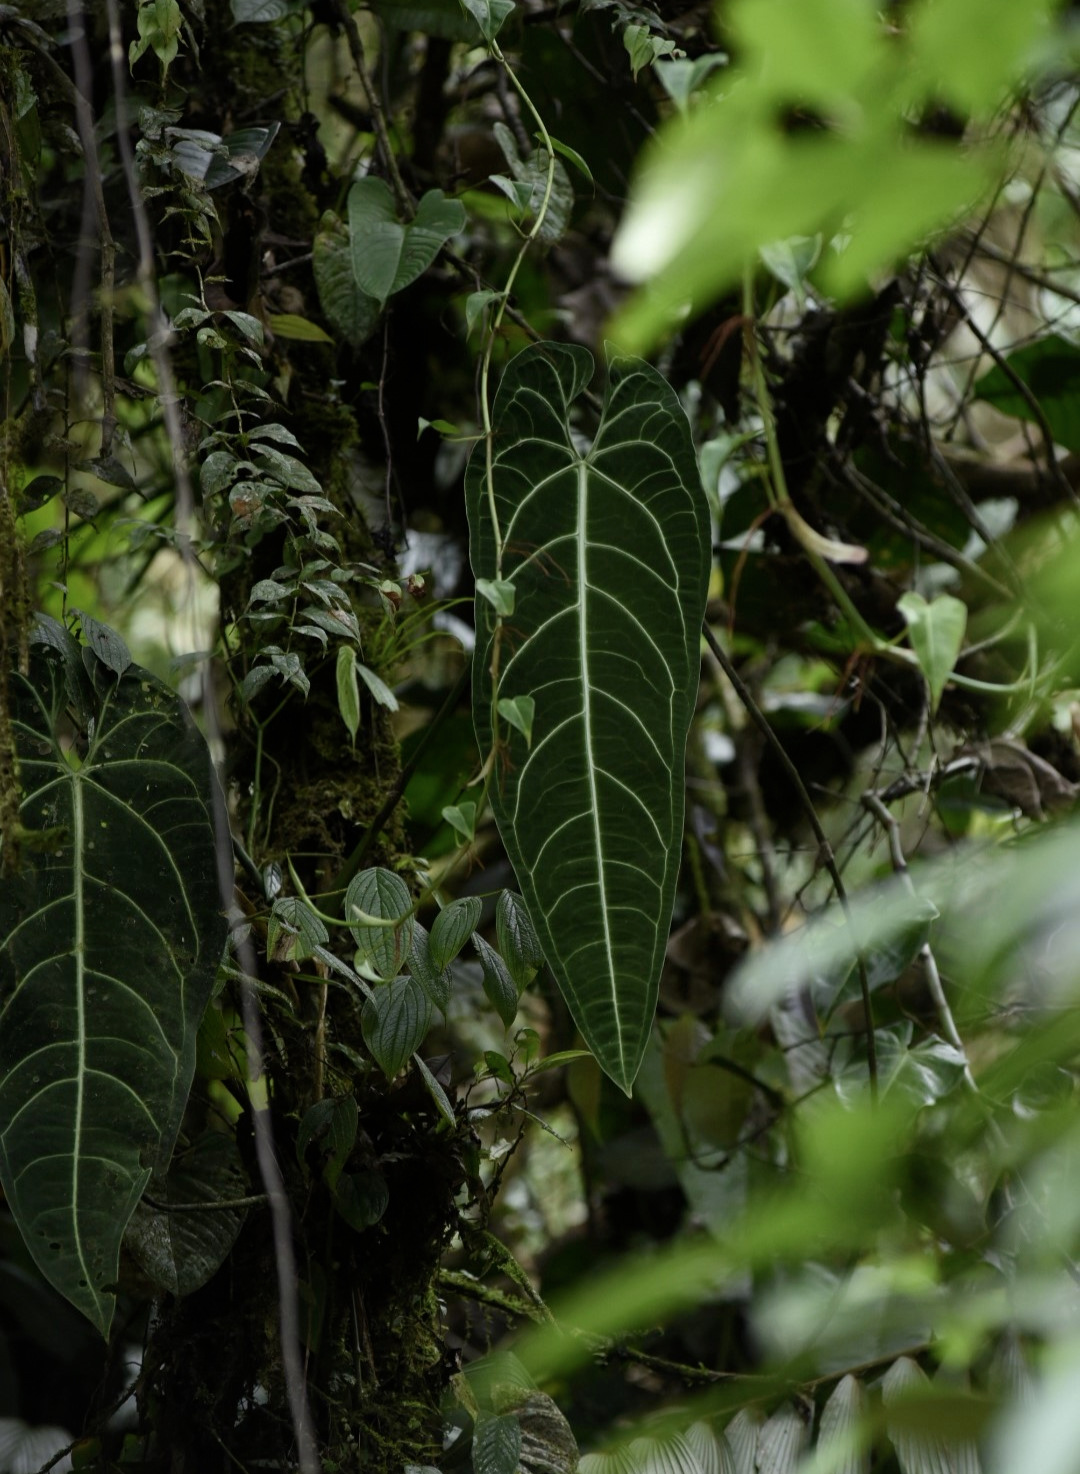 Anthurium warocqueanum  growing as an epiphyte in nature, western Colombia. Image: F. Muller.